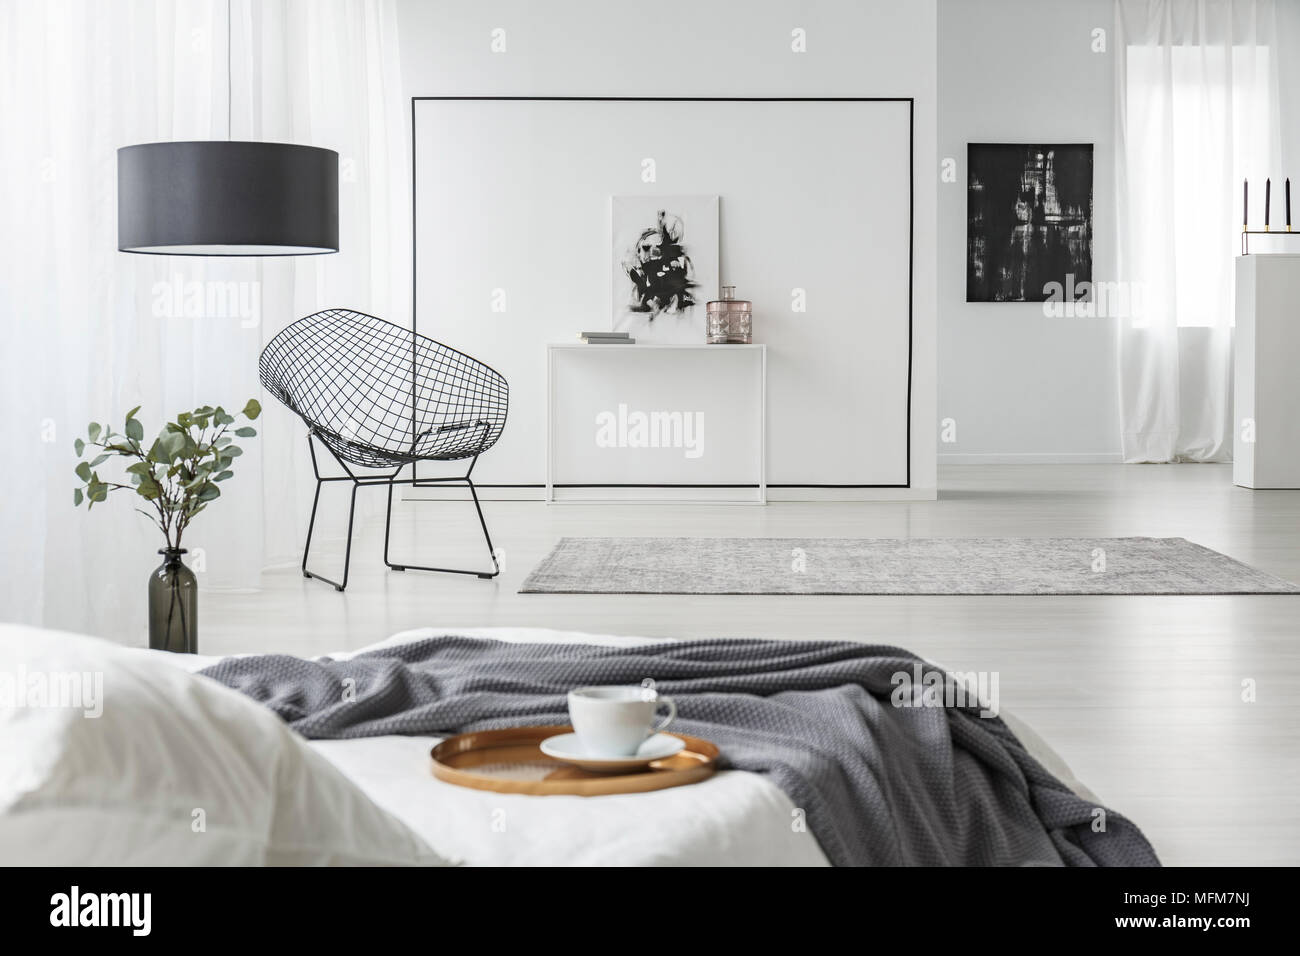 https www alamy com golden tray with a cup on the bed with a grey blanket in white bedroom interior with metal armchair lamp and decorations image181768654 html